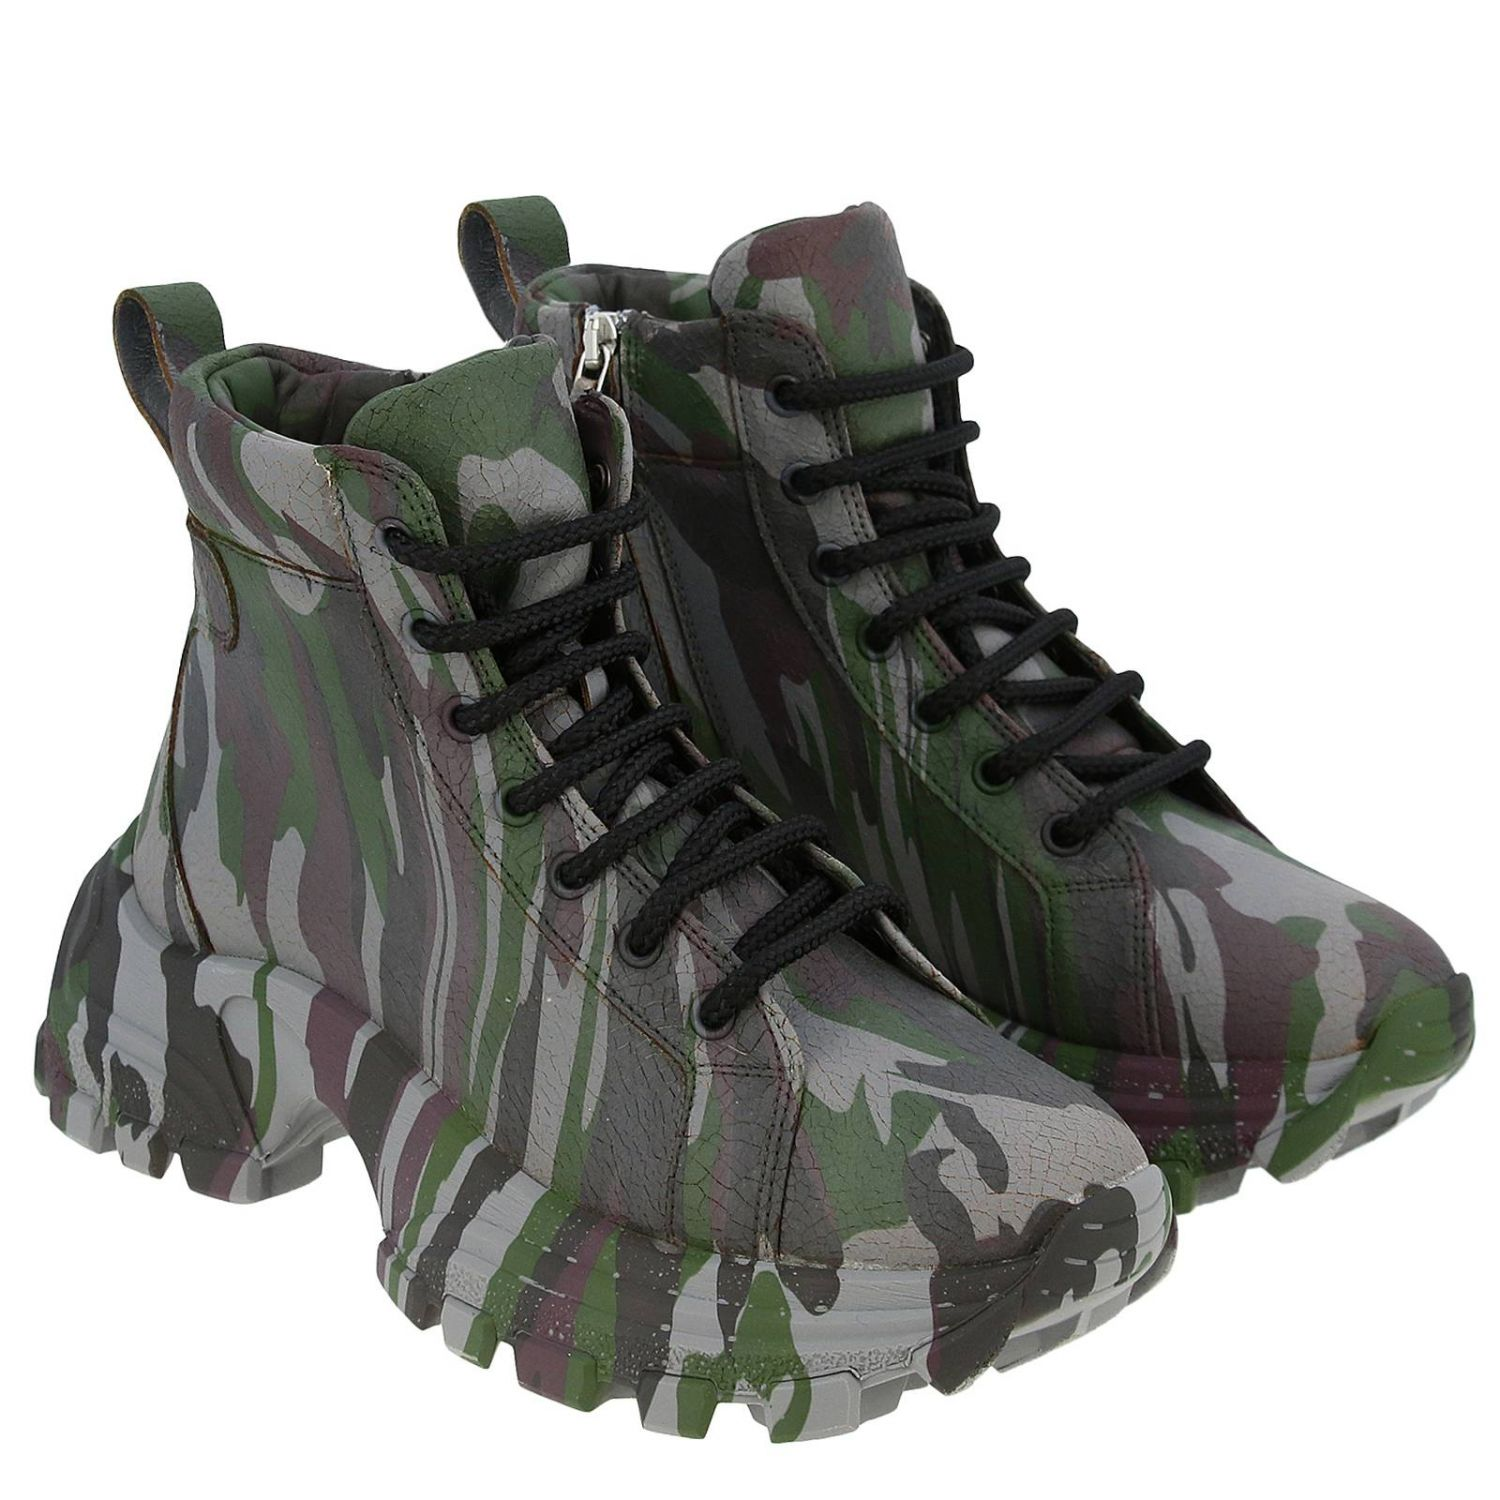 Miu Miu sneakers in camouflage printed leather with combat sole military 2